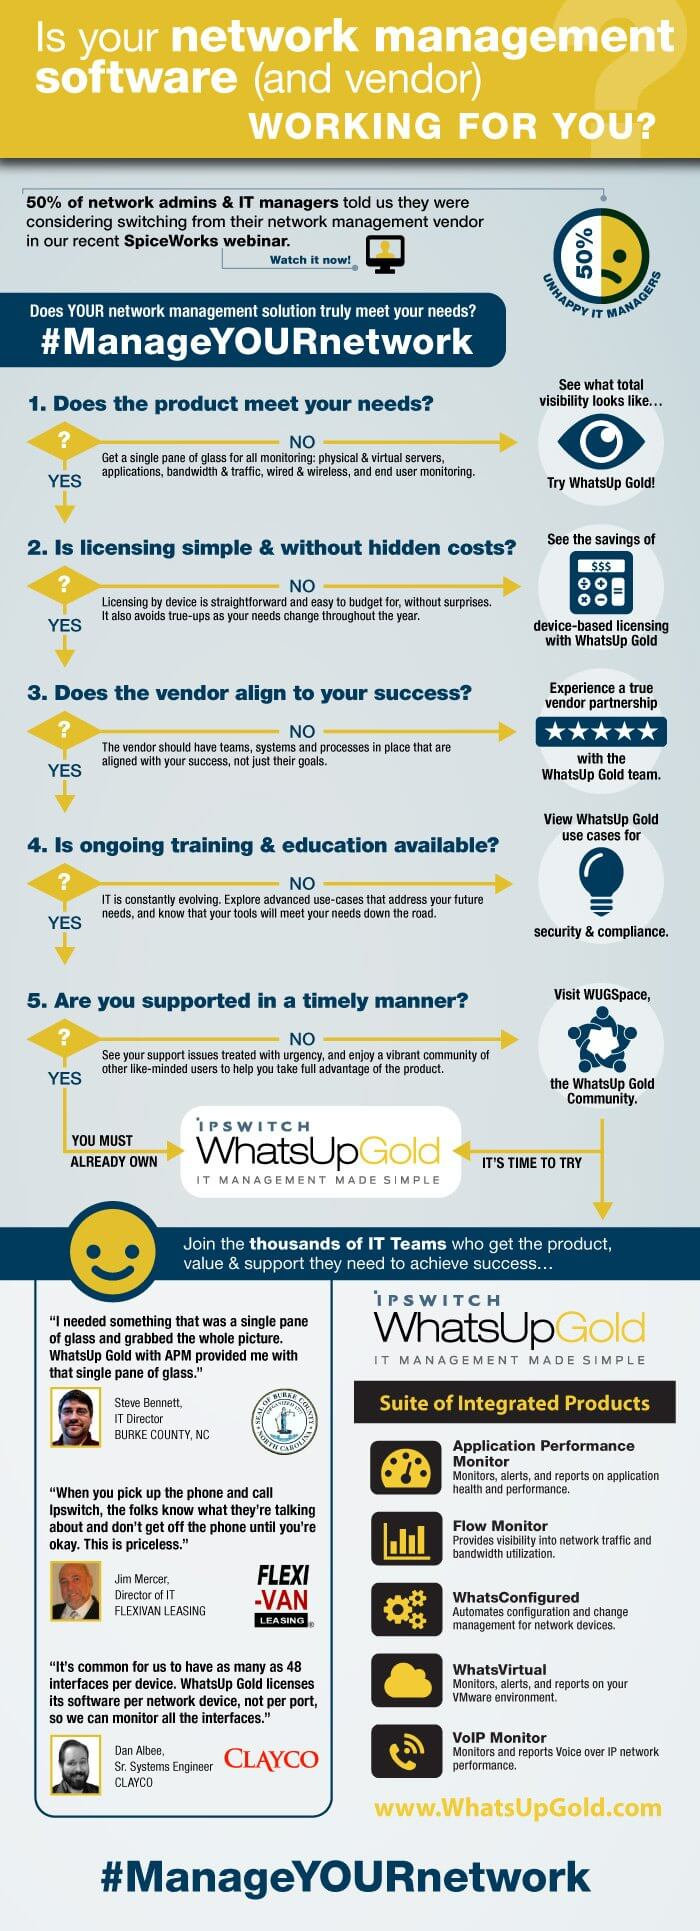 Is Your Network Management Software Managing YOU? [infographic]